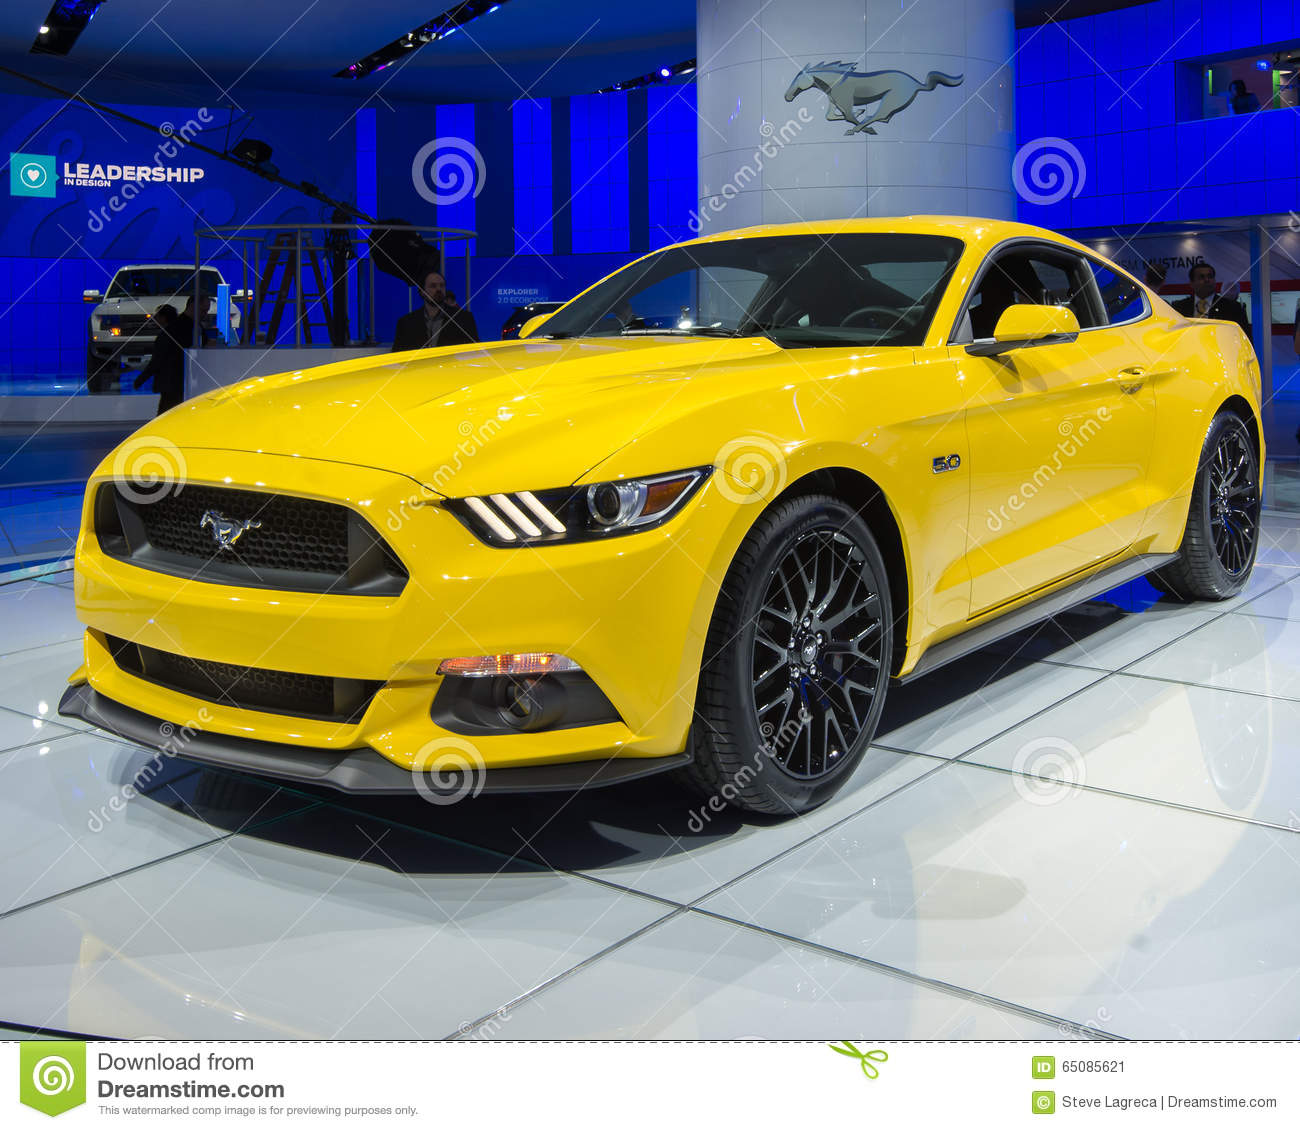 Ford Gt 2014 Price: 2014 Ford Mustang GT Editorial Photo. Image Of Yellow